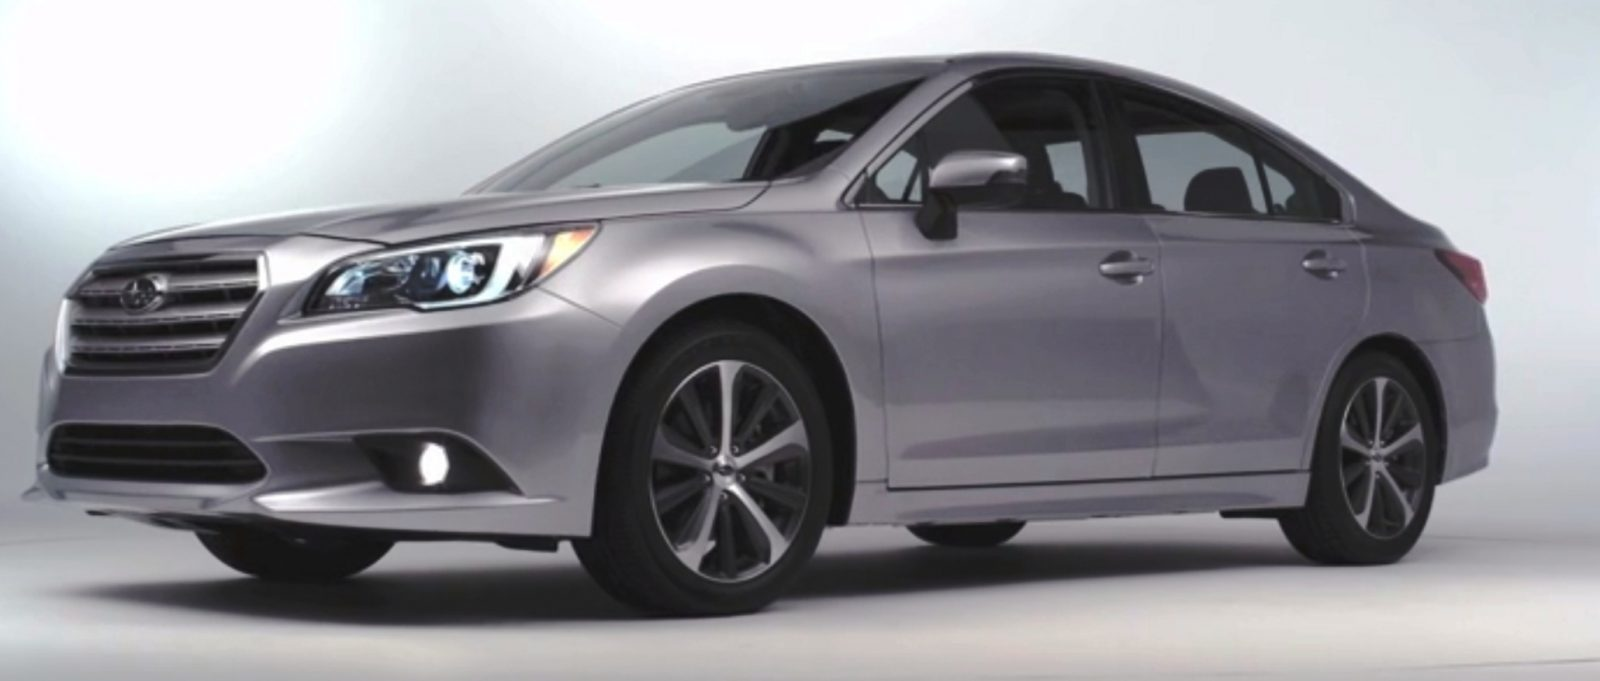 2015 Subaru Legacy Sedan -- More Lux and Tech in Cabin -- Finally Some Exterior Style -- Even 36MPG Highway  23